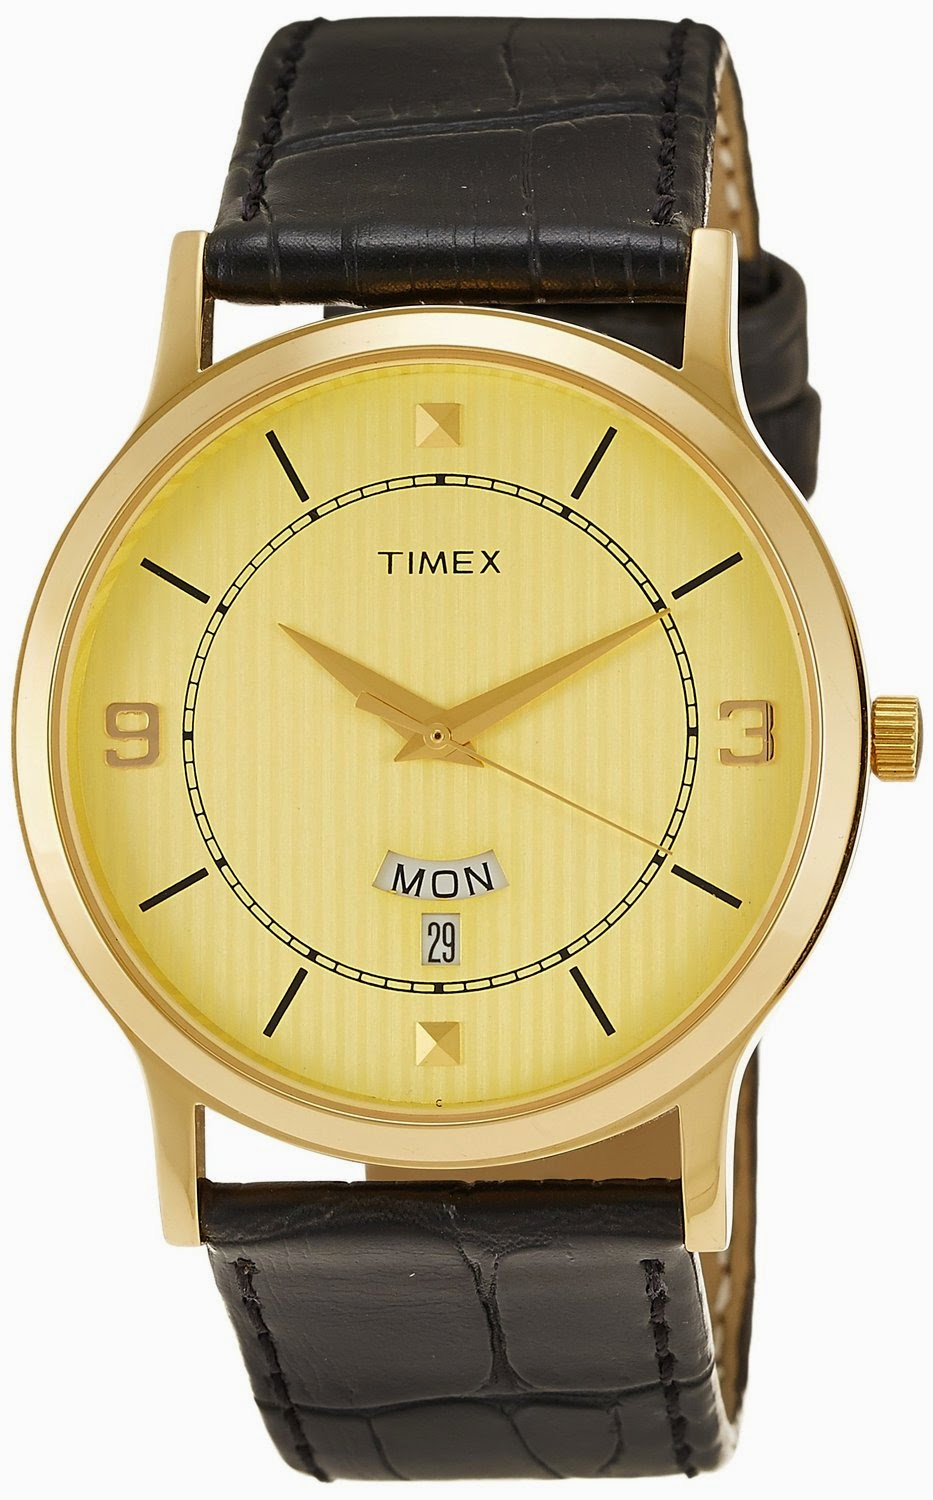 Amazon: Buy Timex Analog Beige Dial Men's Watch – TI000R419 at Rs.999 | Lowest Online